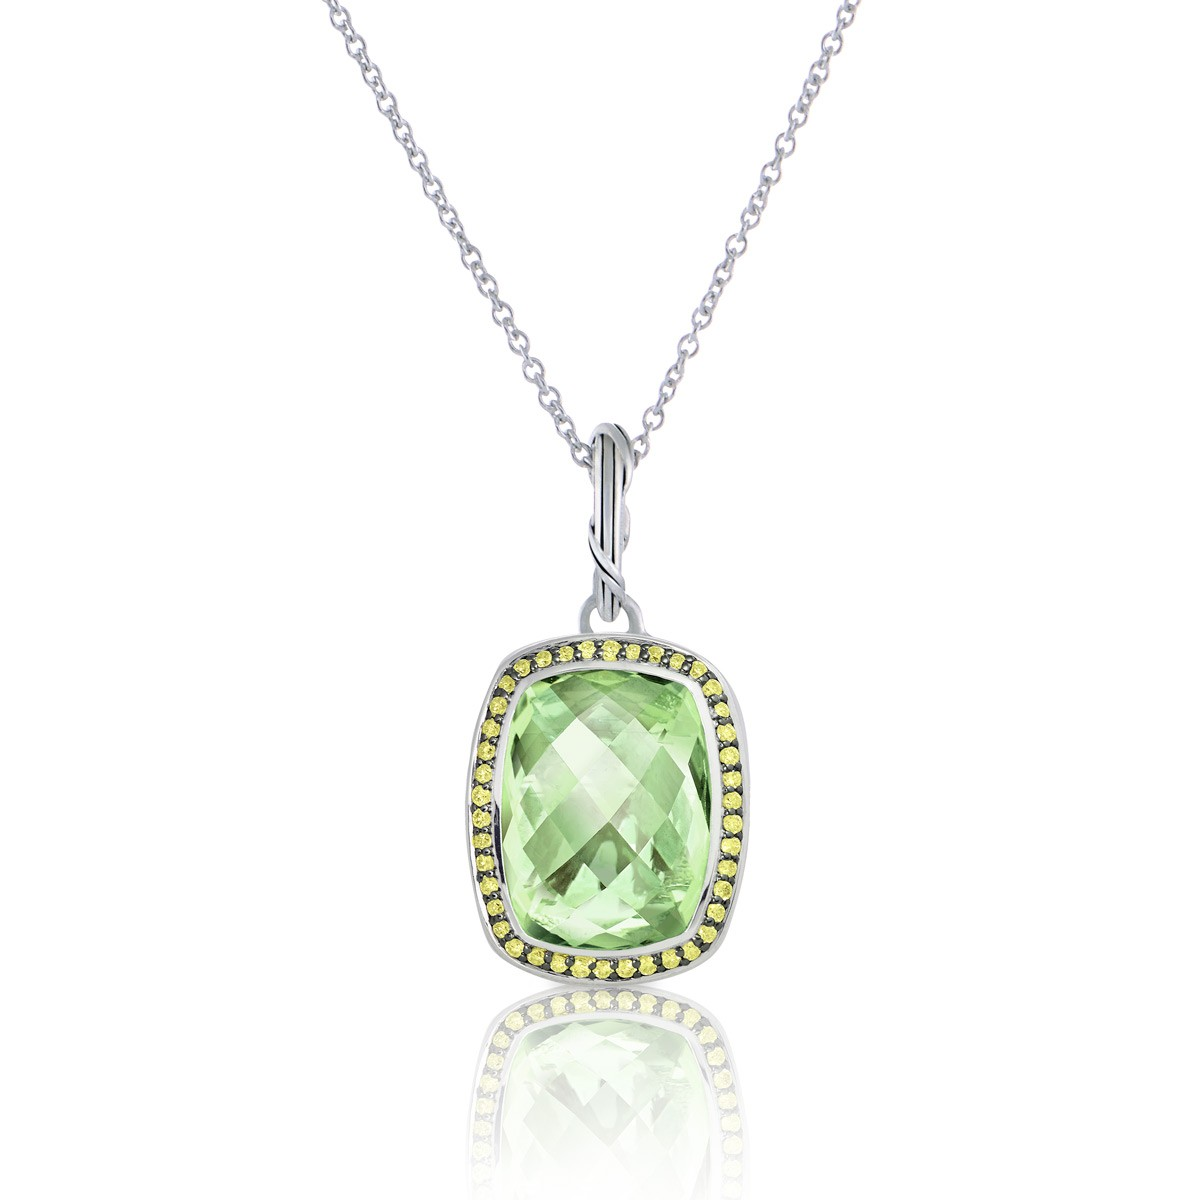 Fantasies Prasiolite Halo Pendant Necklace in sterling silver with yellow sapphires